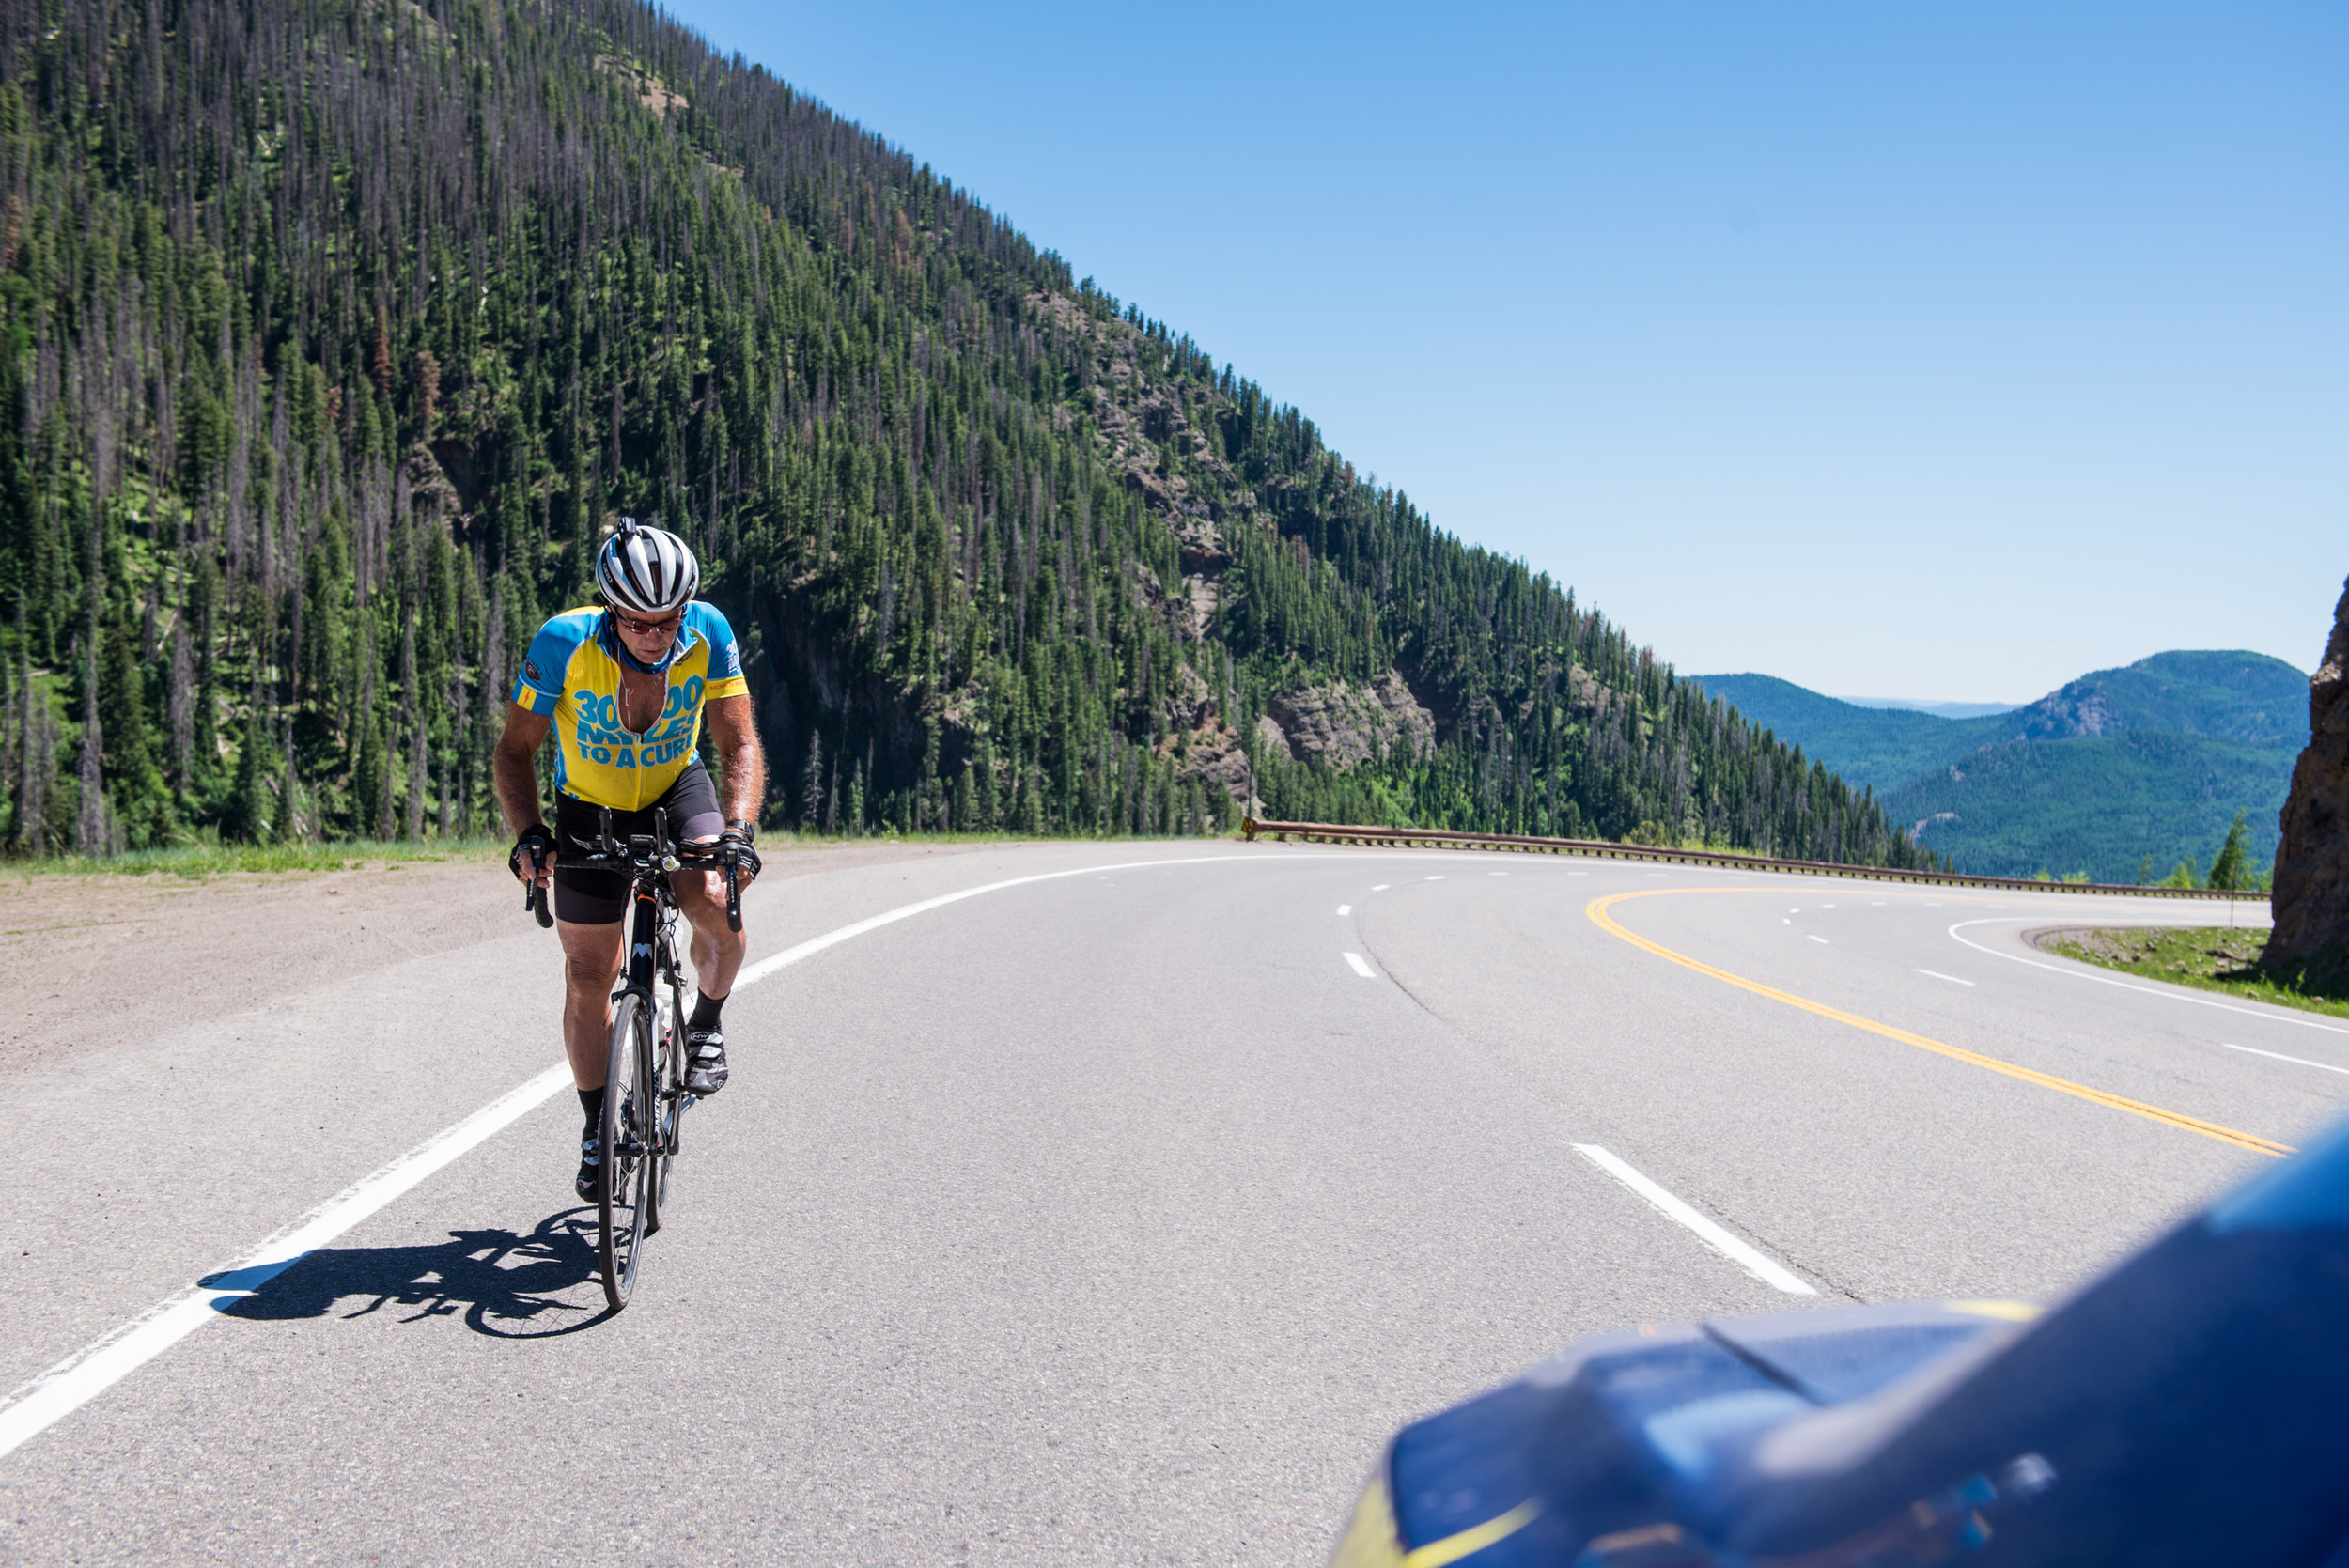 One of the more challenging parts of the race is the Wolf Creek Pass climb where cyclists have to climb up to 10,857 feet. The steep grade and lack of oxygen at such a high altitude make it difficult to get through. Marshall stands up to pedal through the pass on June 18th, 2016.